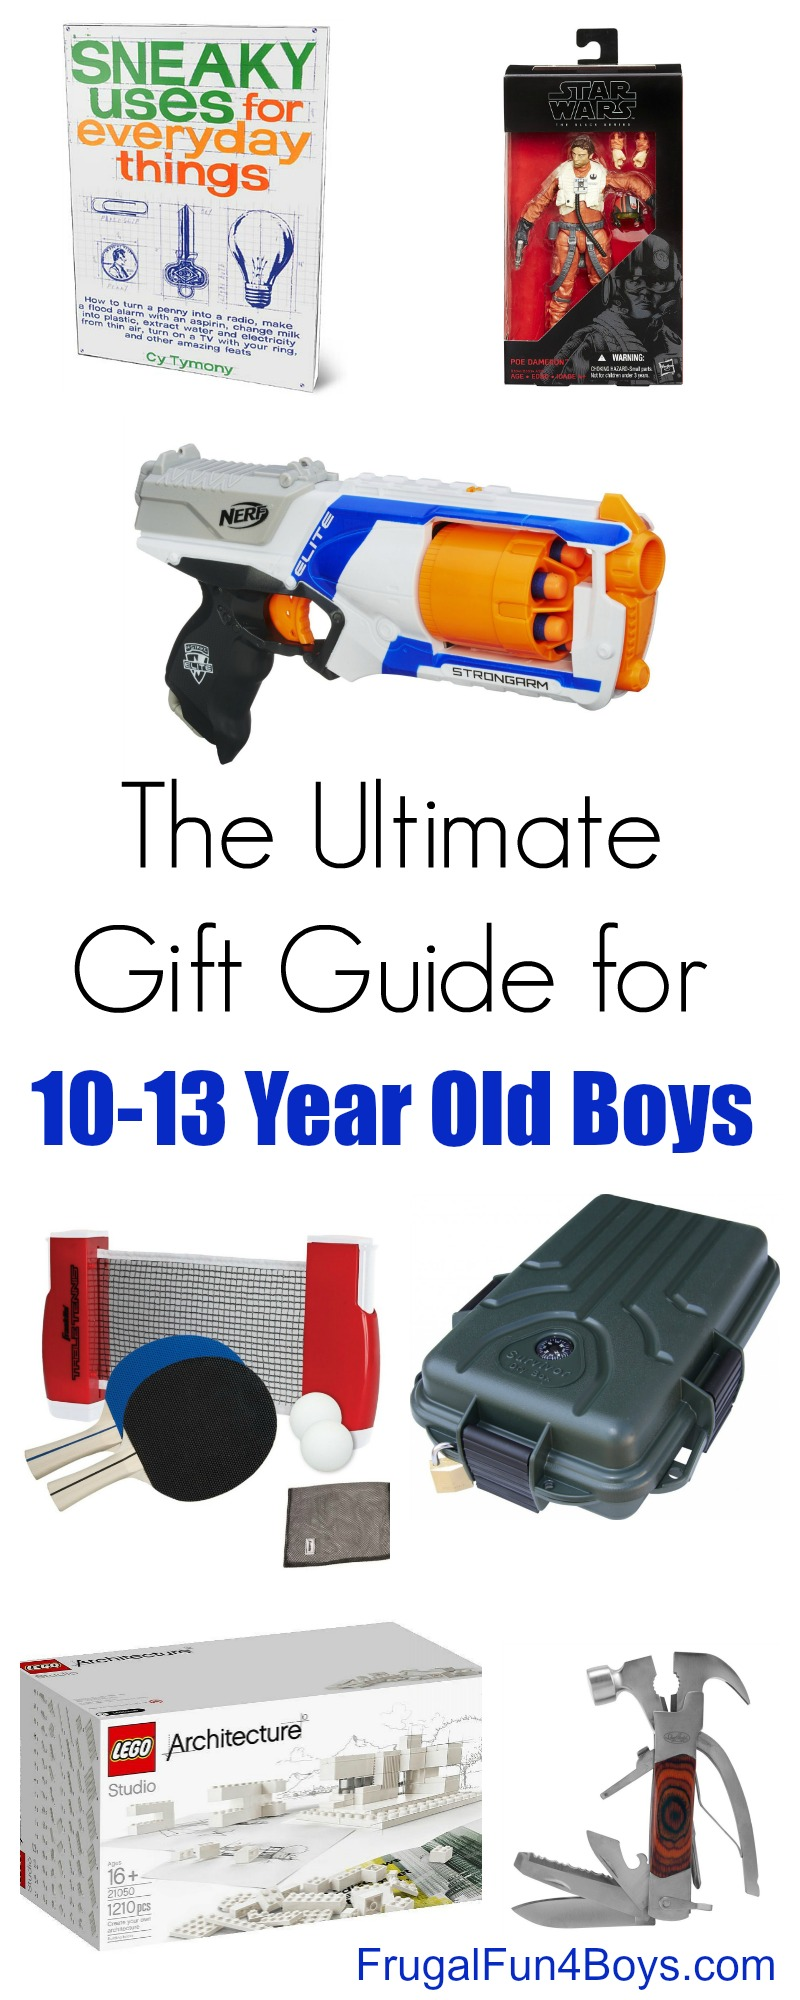 The Best Gifts for 10-13 Year Old Boys